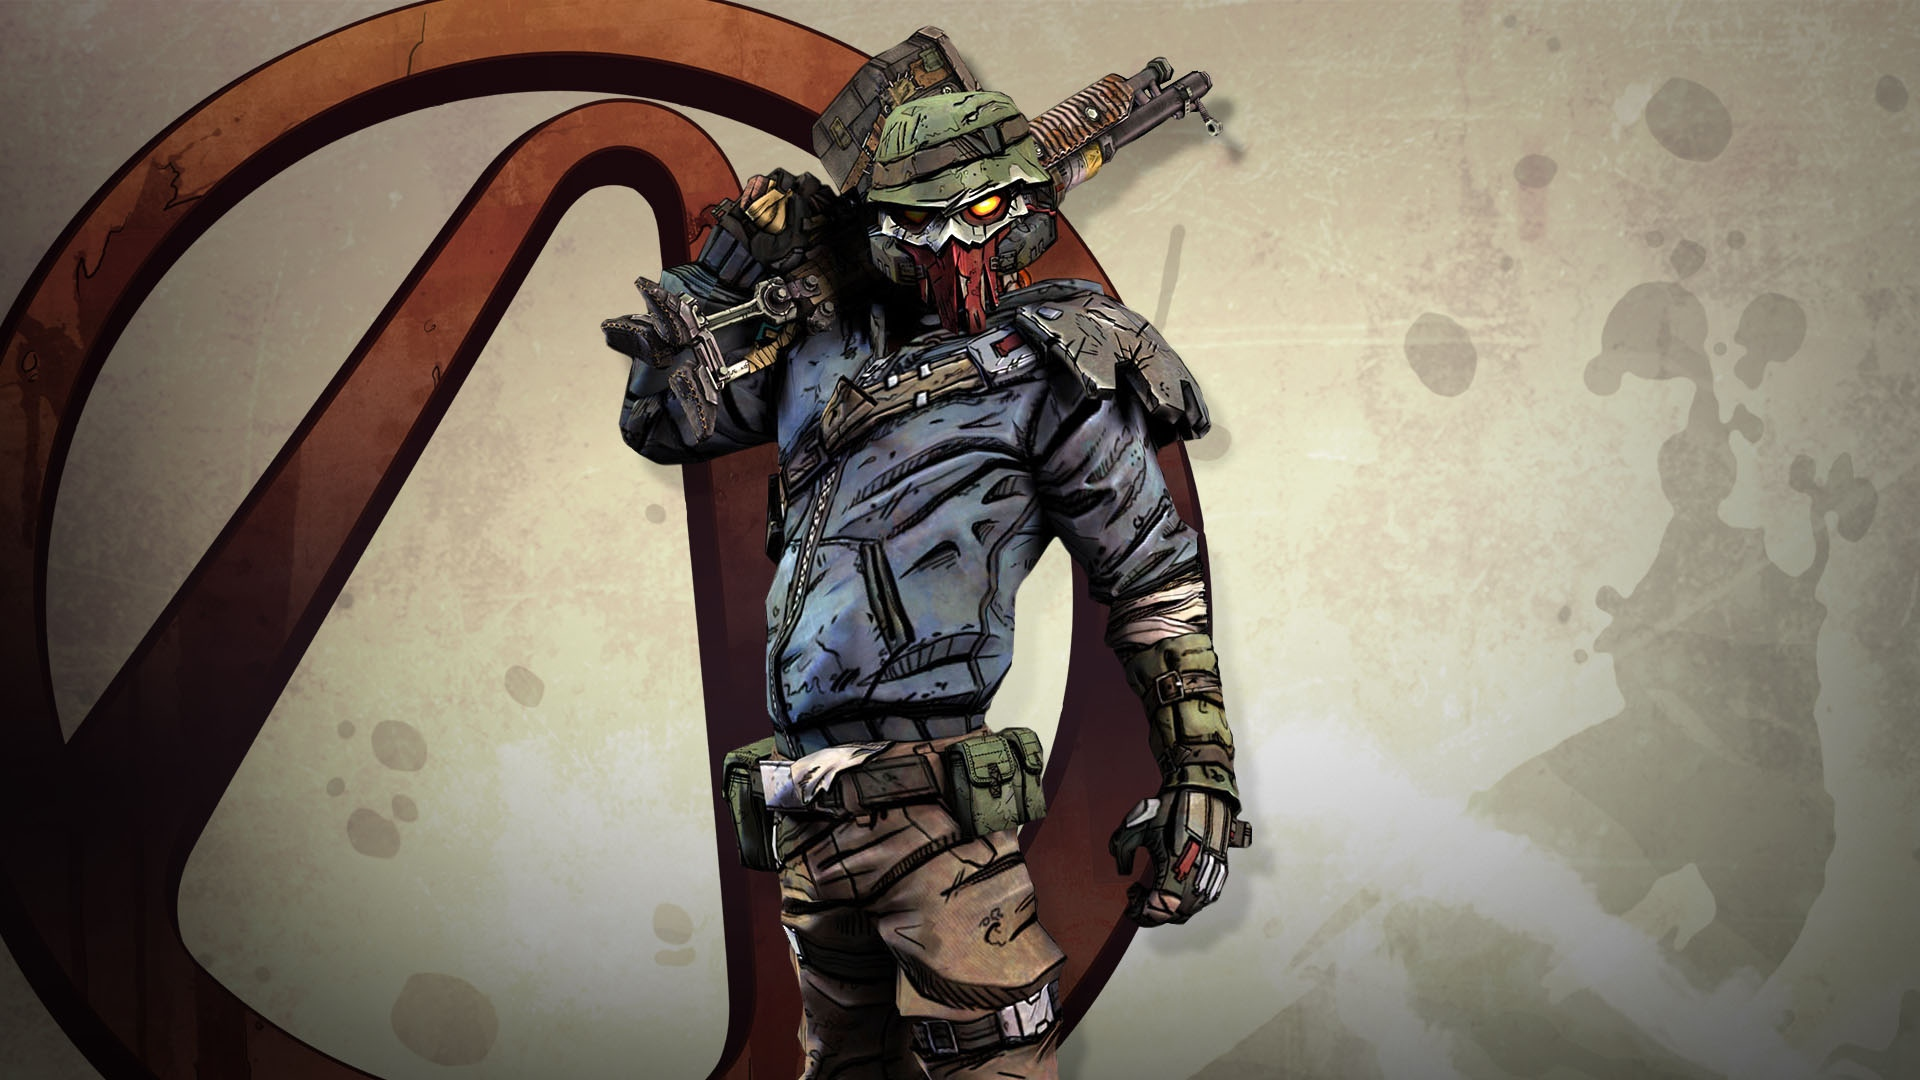 Download wallpaper 1920x1080 borderlands roland shotgun emblem borderlands roland shotgun voltagebd Image collections